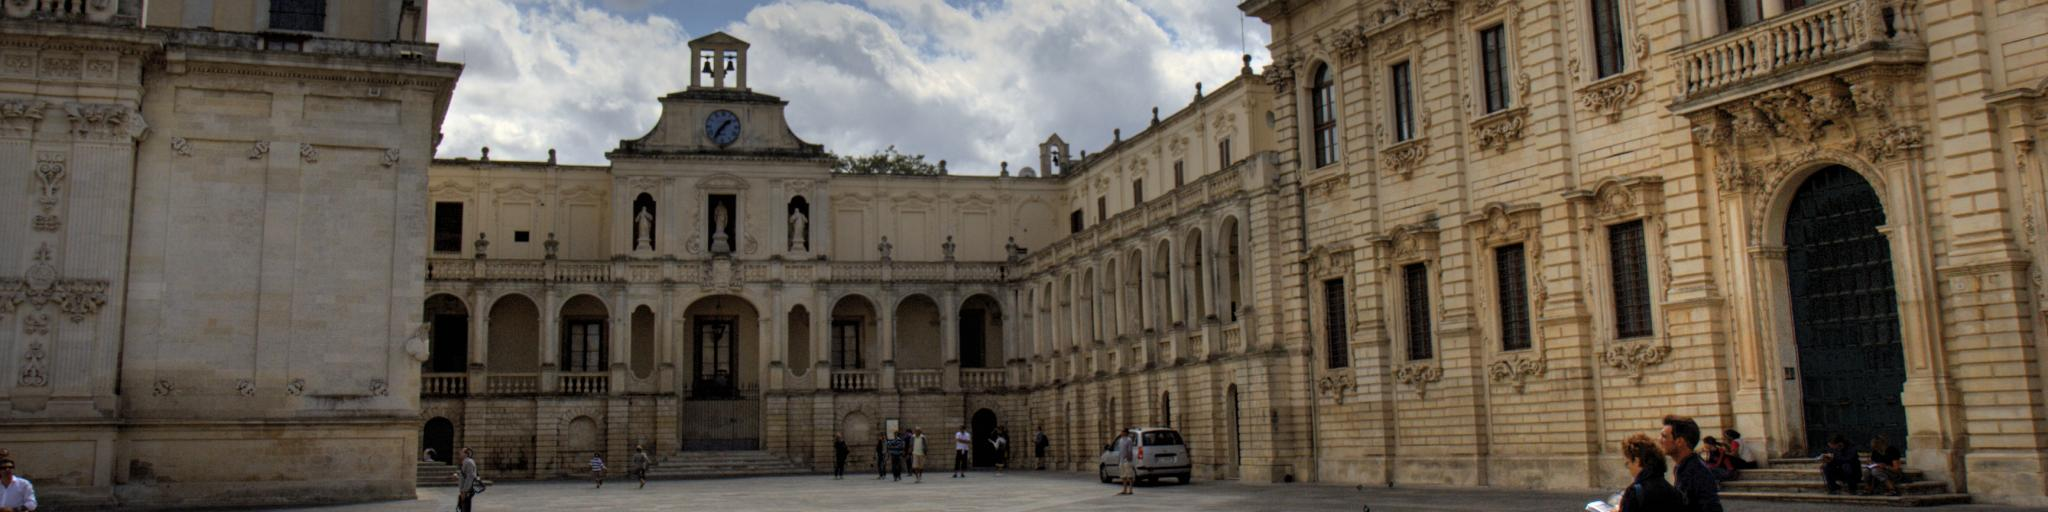 People walk around the Piazza Duomo in the town of Lecce, Italy